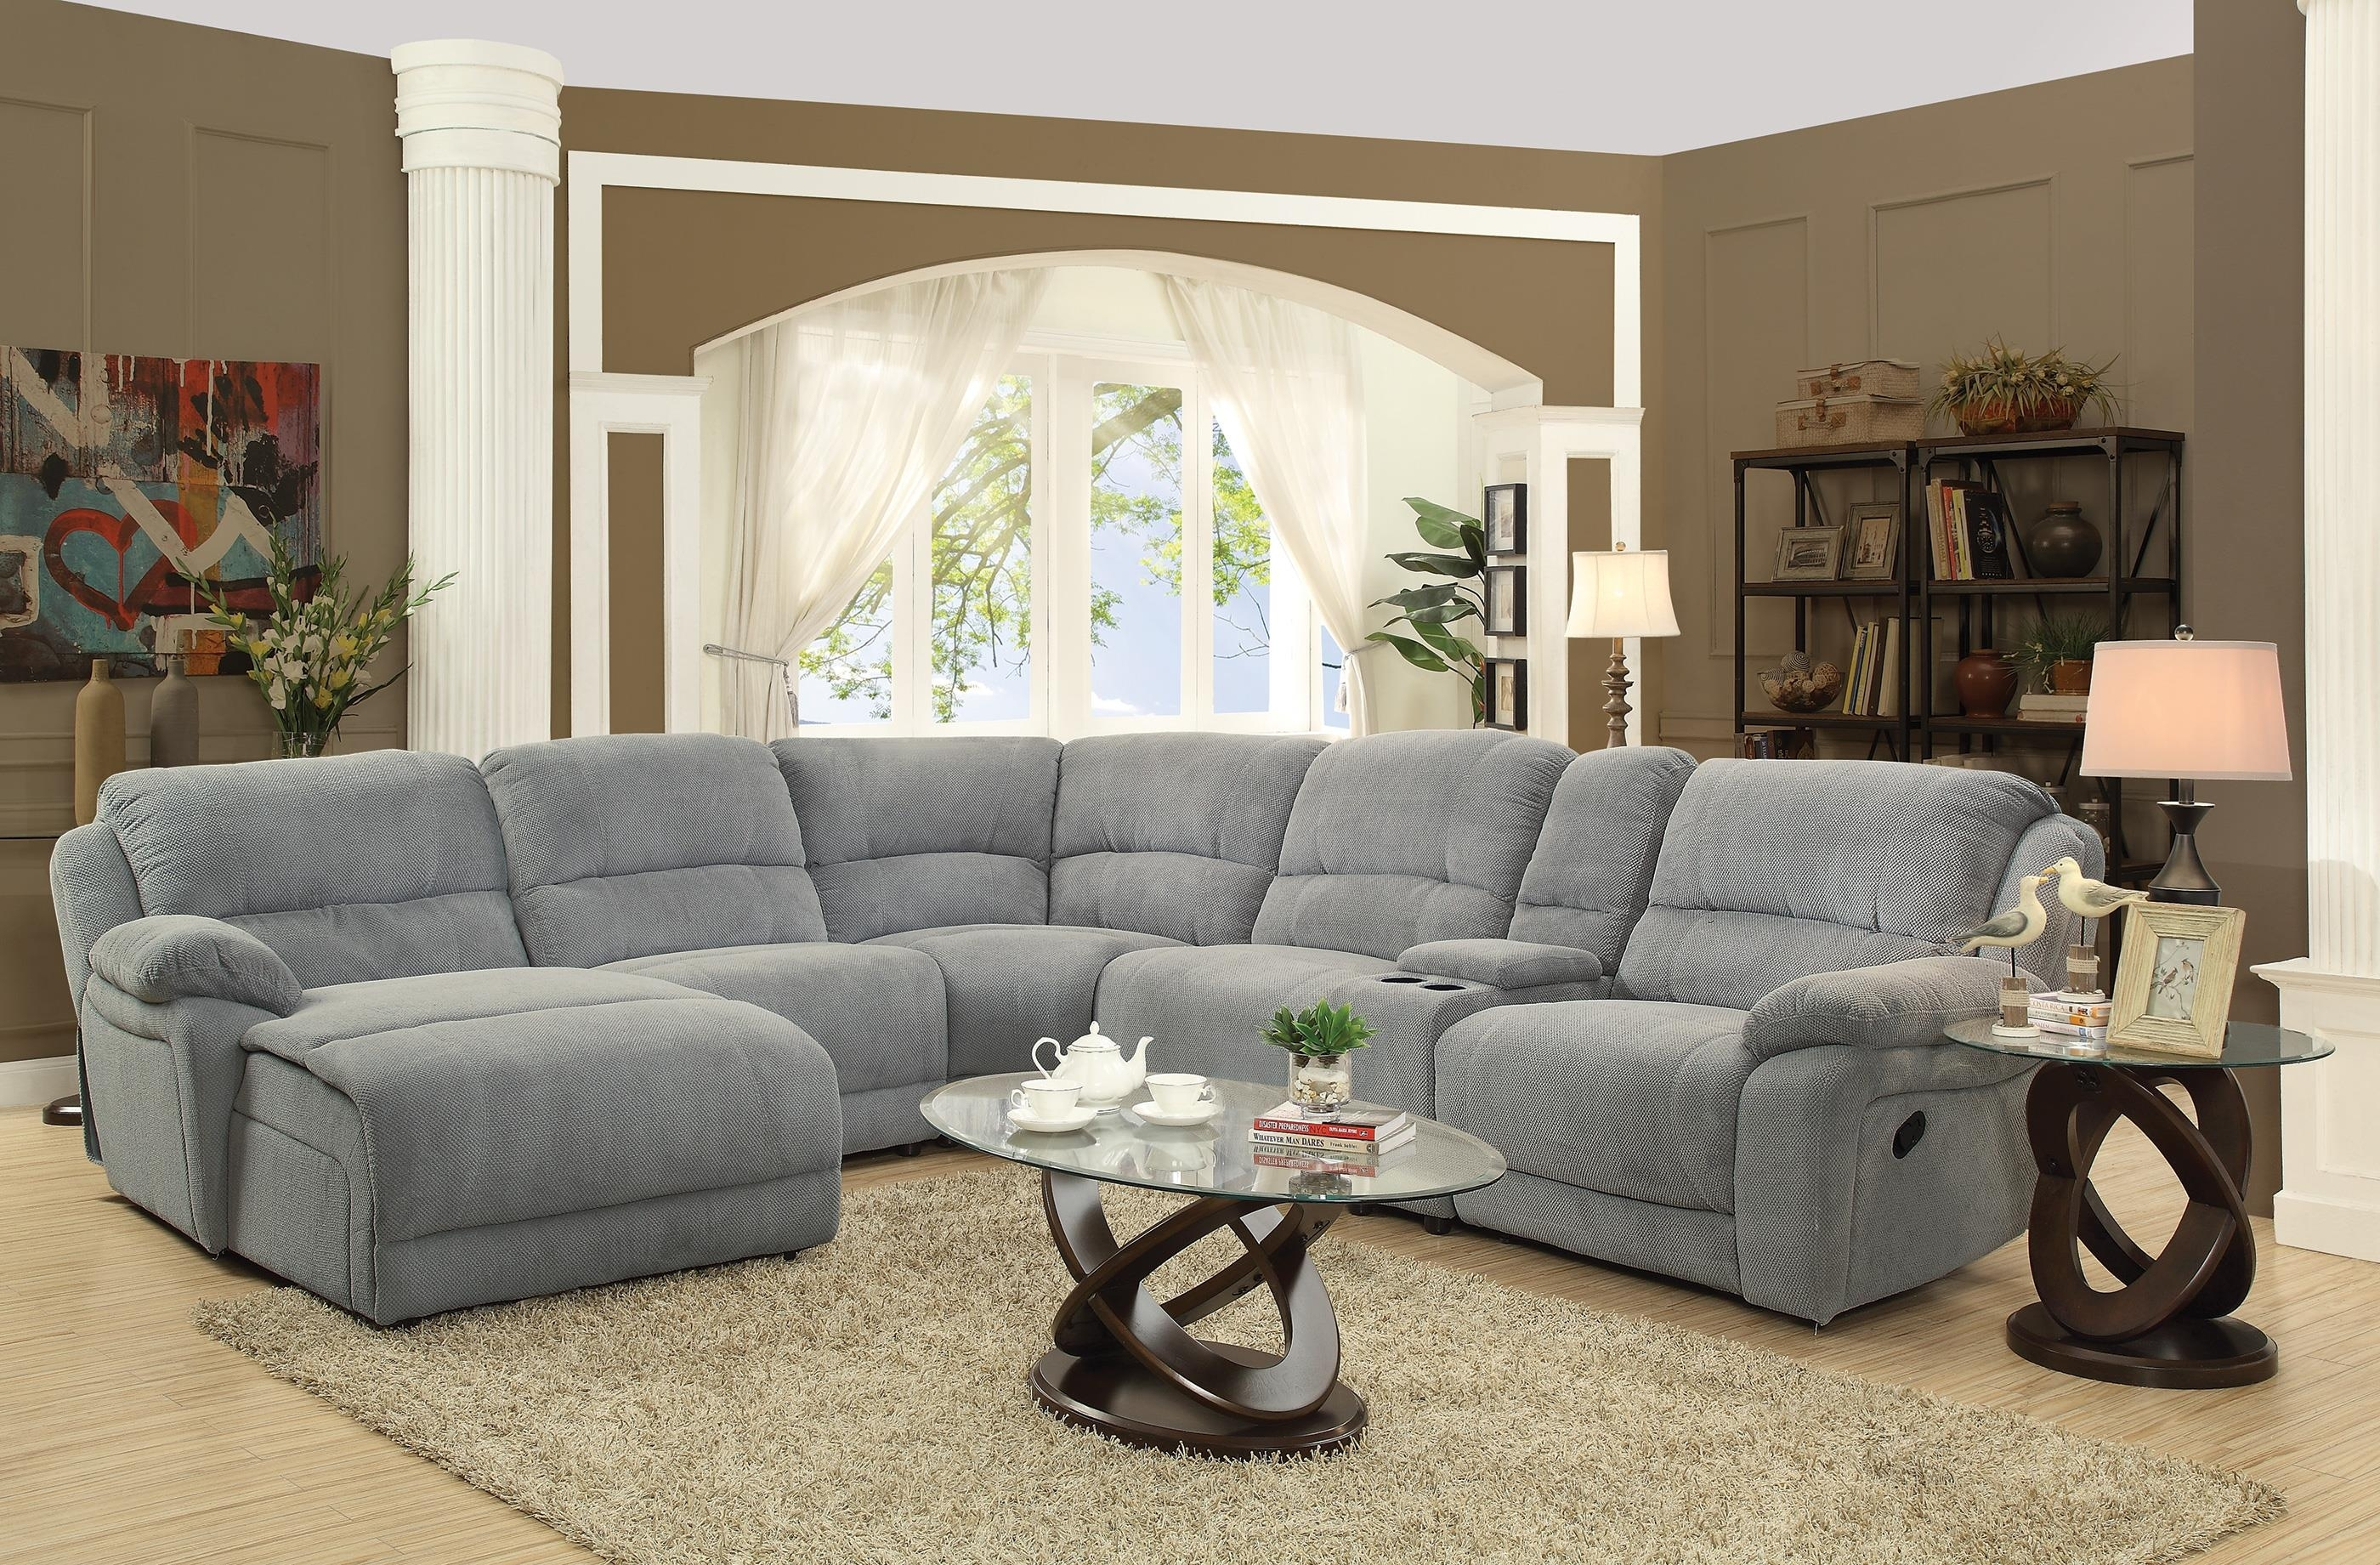 Sofa Couches Tanectional Microfiber Black Fabric Jedd Reclining Intended For Jedd Fabric Reclining Sectional Sofas (View 2 of 10)